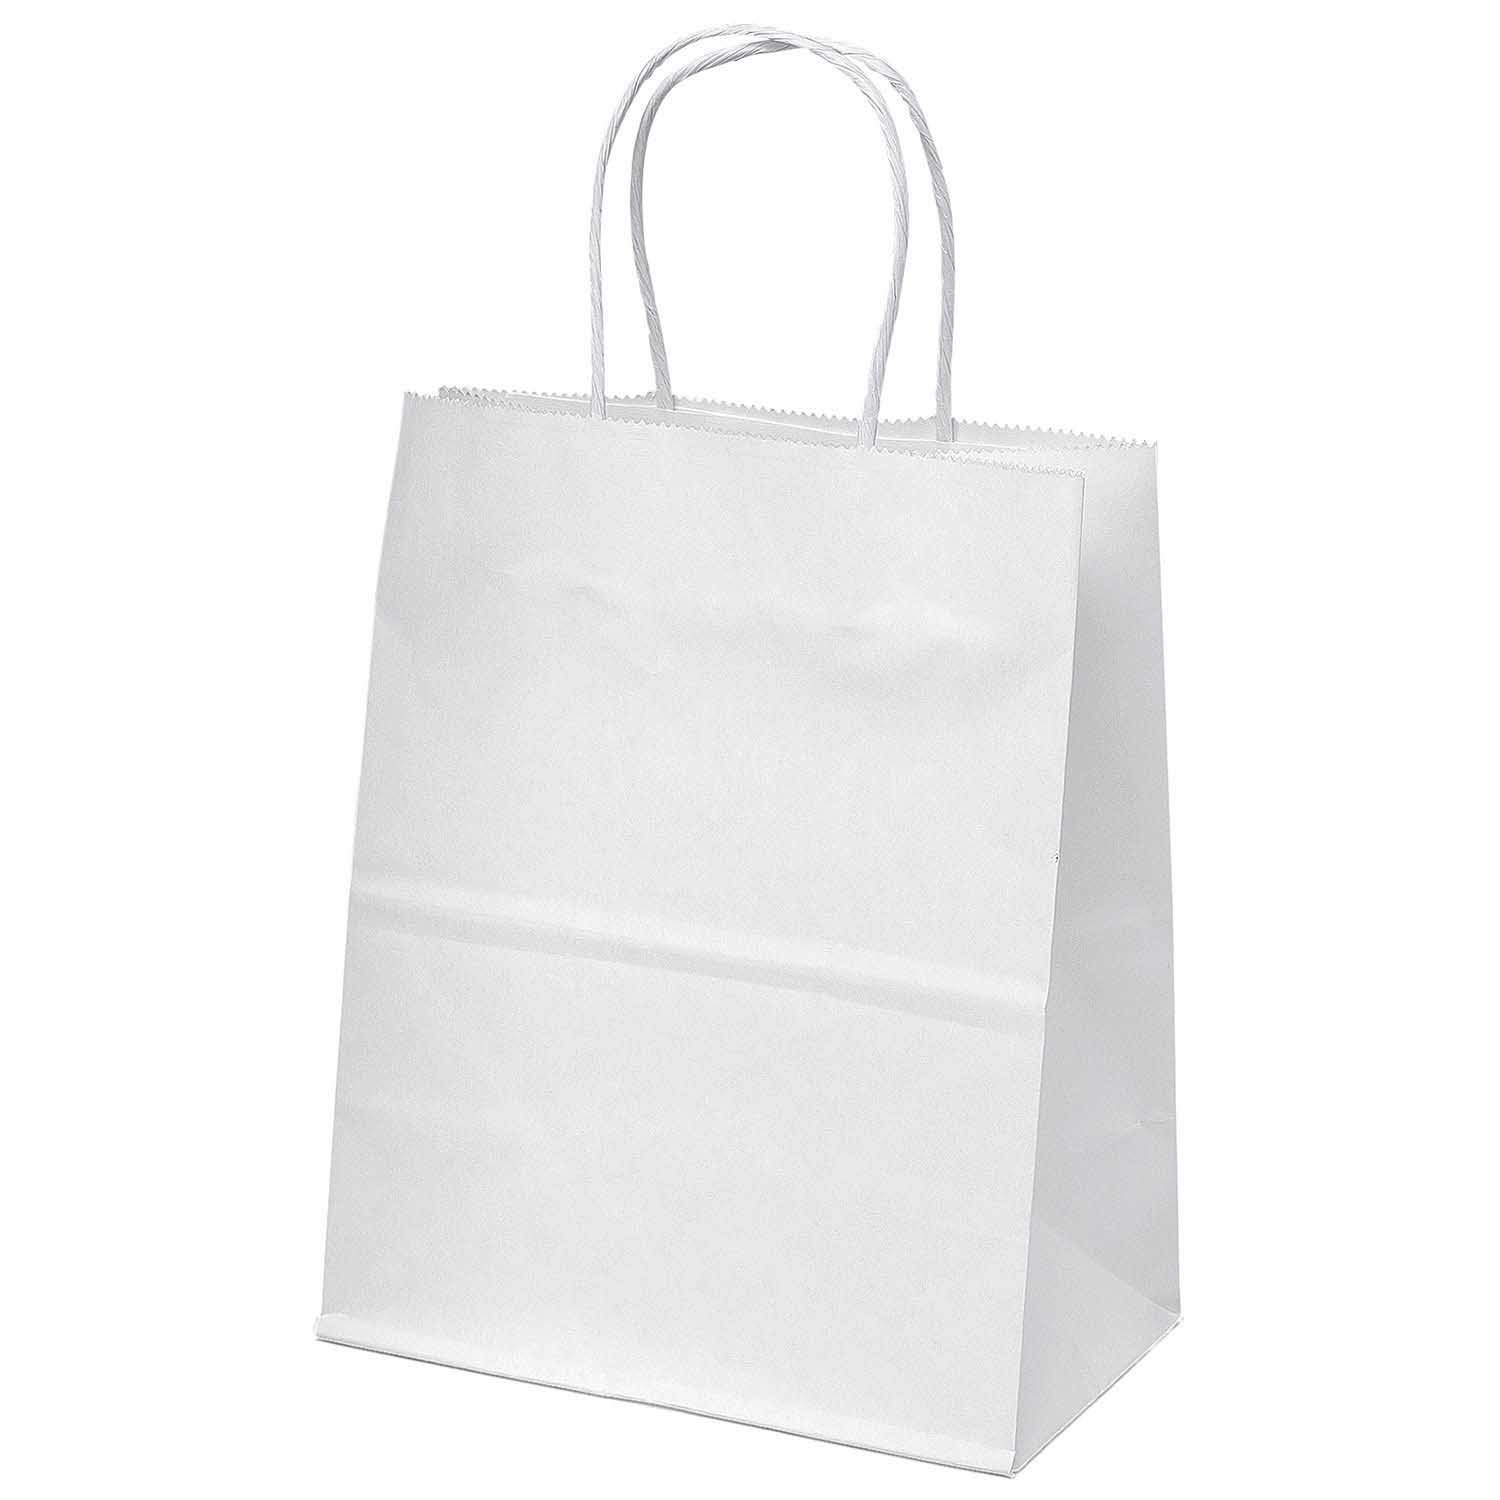 Paper Gift Bags White Kraft Paper Bags Merchandise Shopping Party Favor